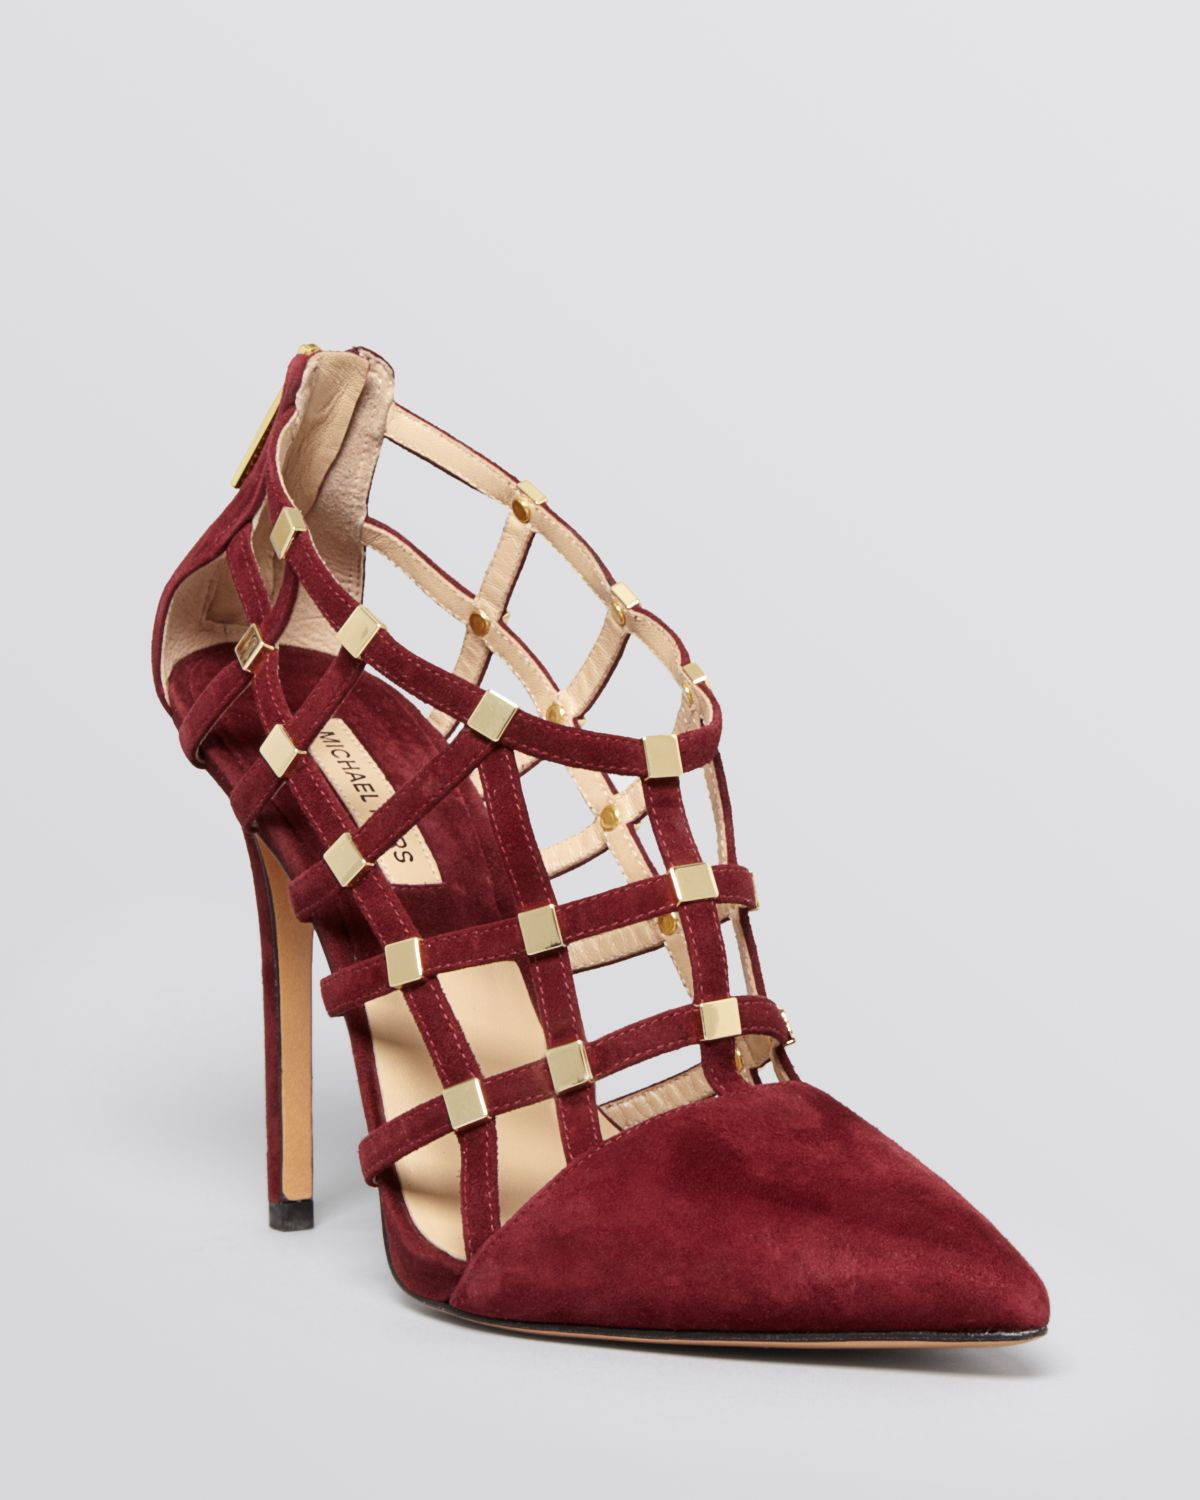 Lyst Michael Kors Agnes Suede Cage Pump In Red